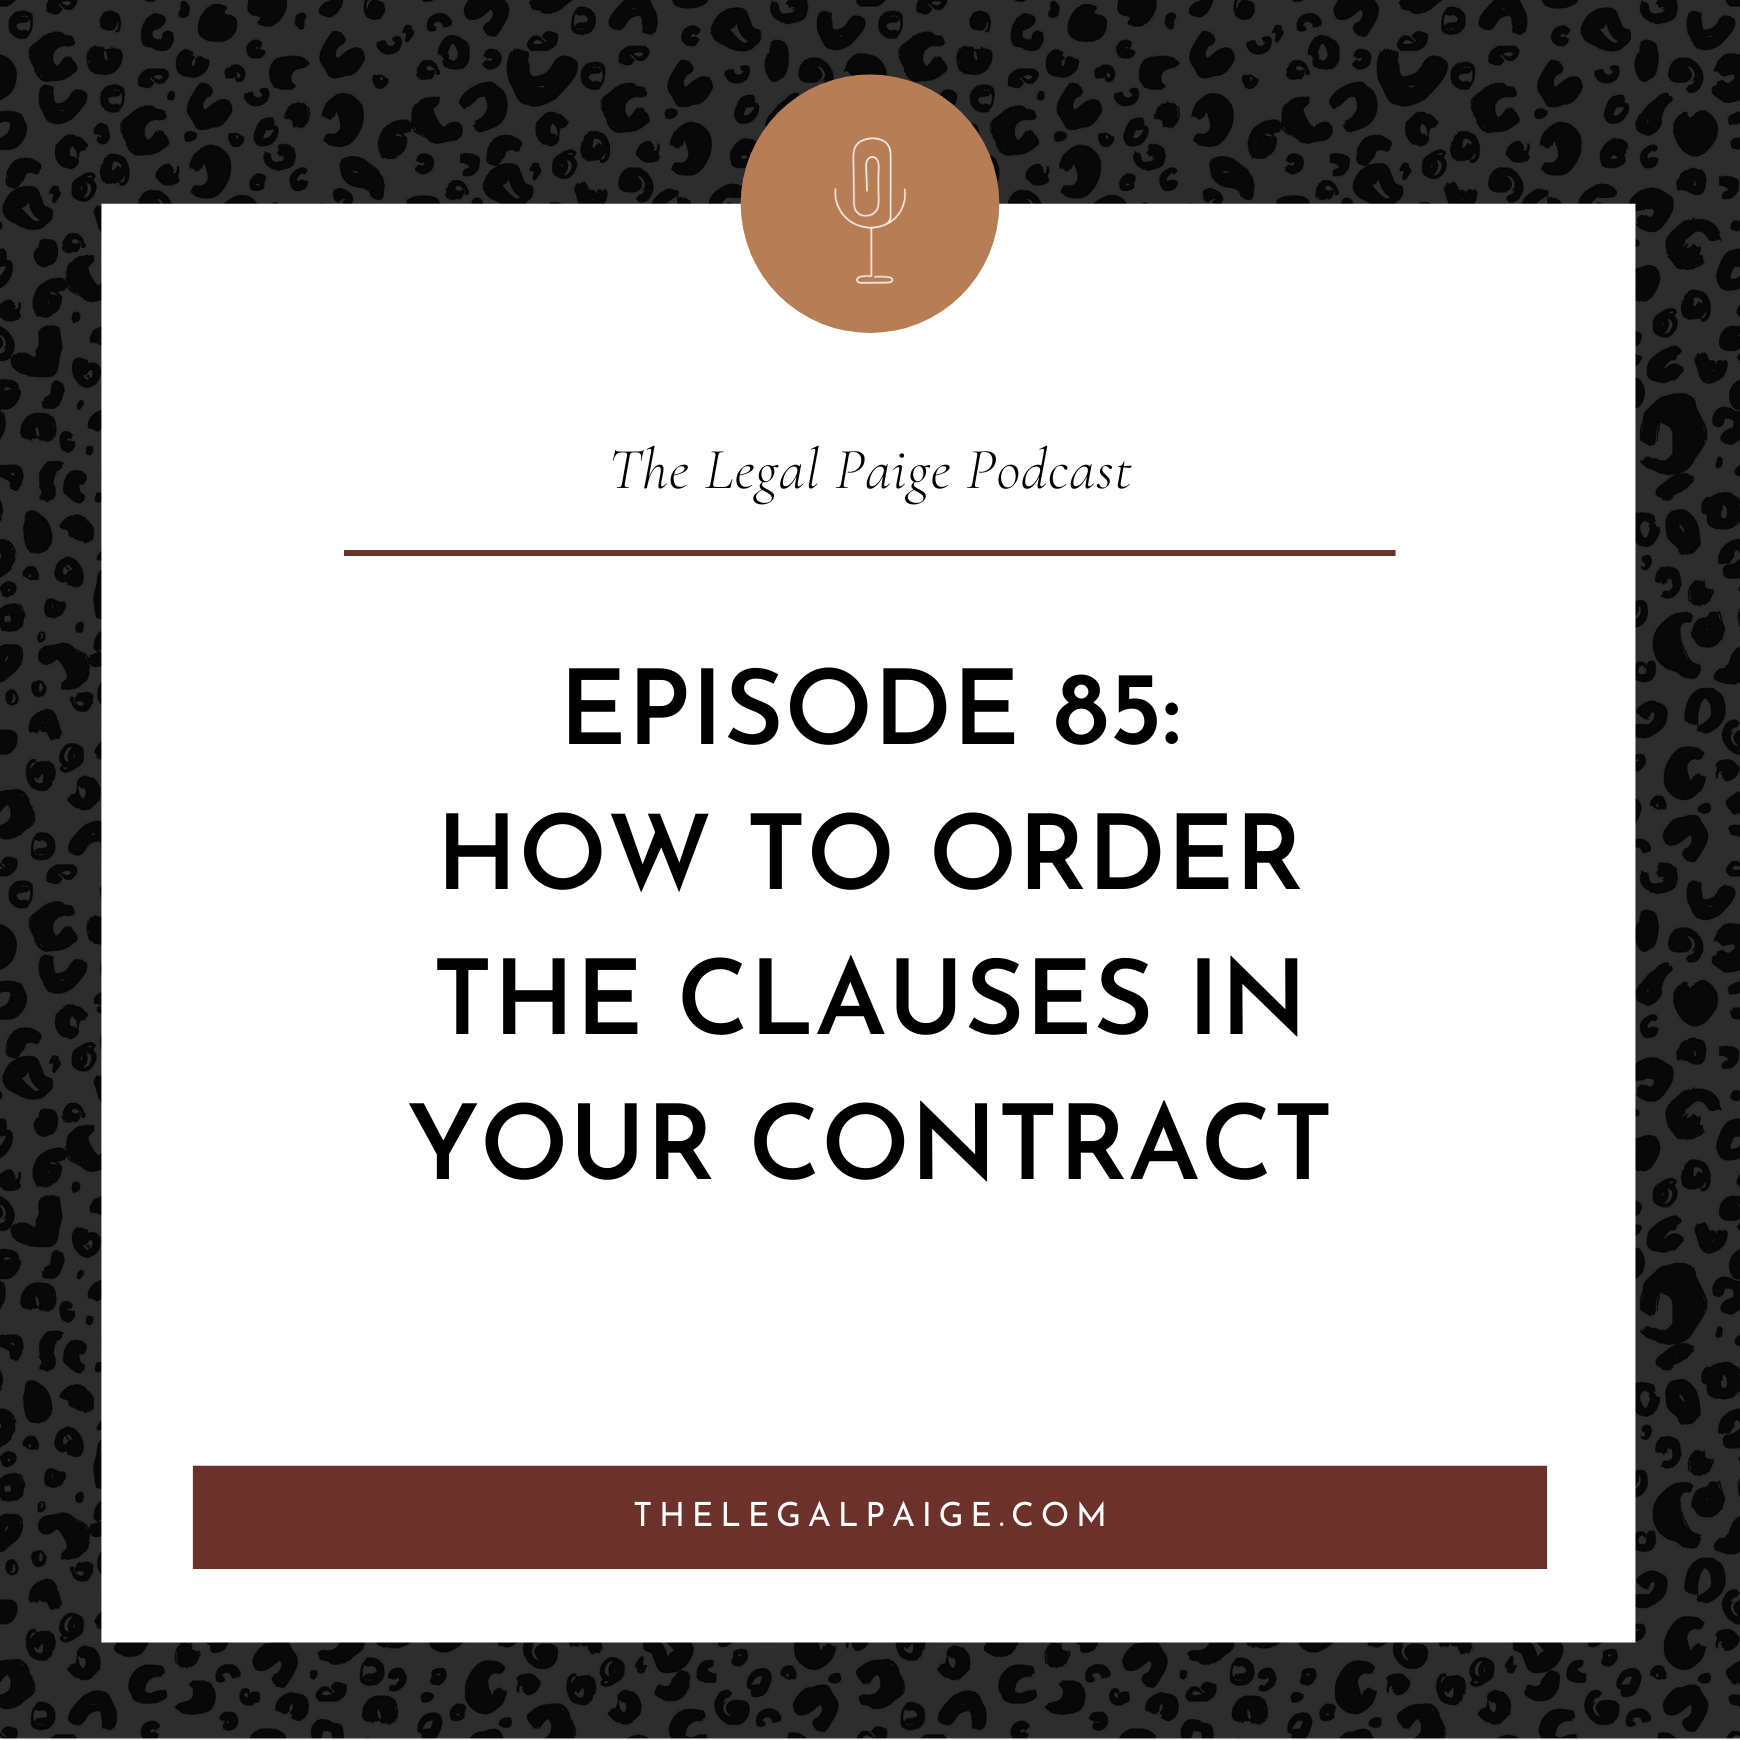 Episode 85: How To Order The Clauses In Your Contract